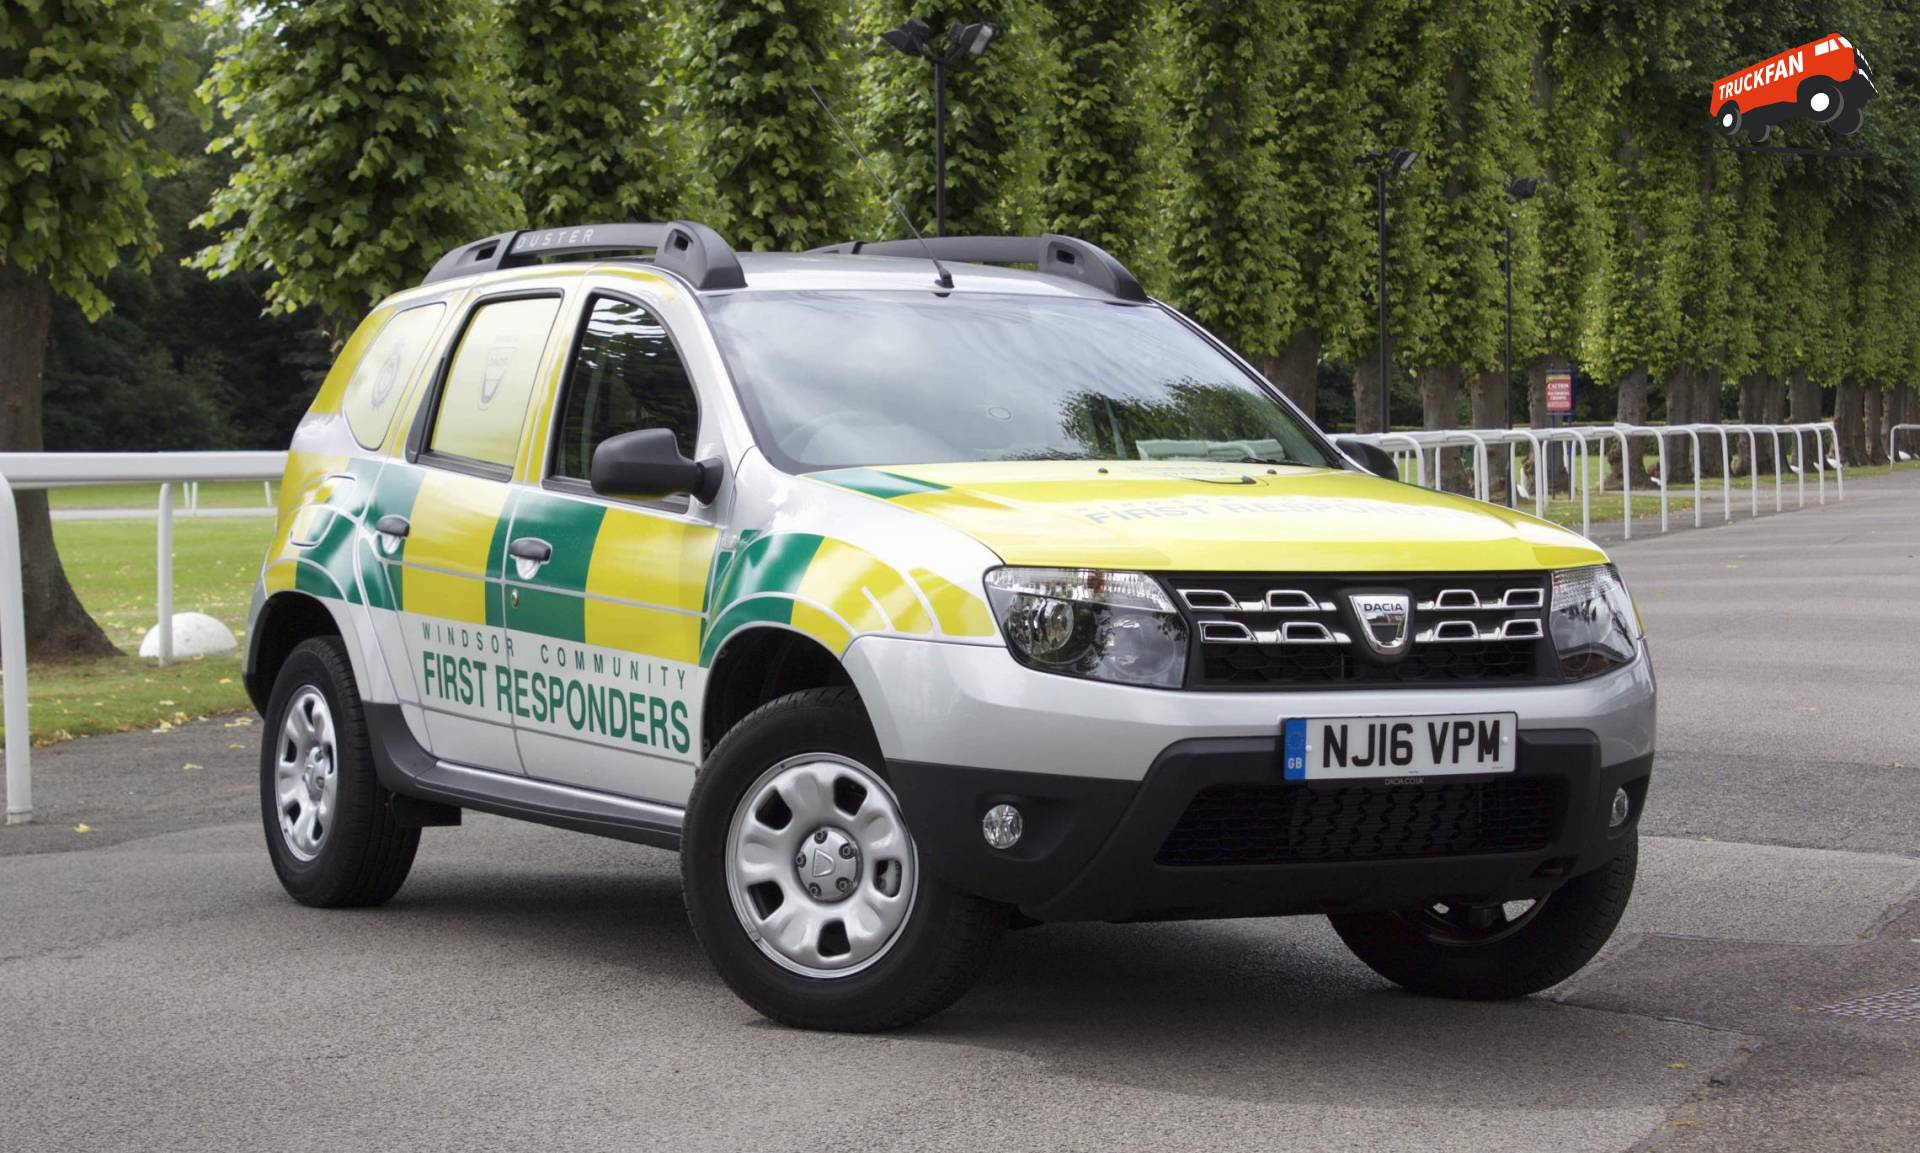 dacia duster joins windsor community first responders alex miedema. Black Bedroom Furniture Sets. Home Design Ideas